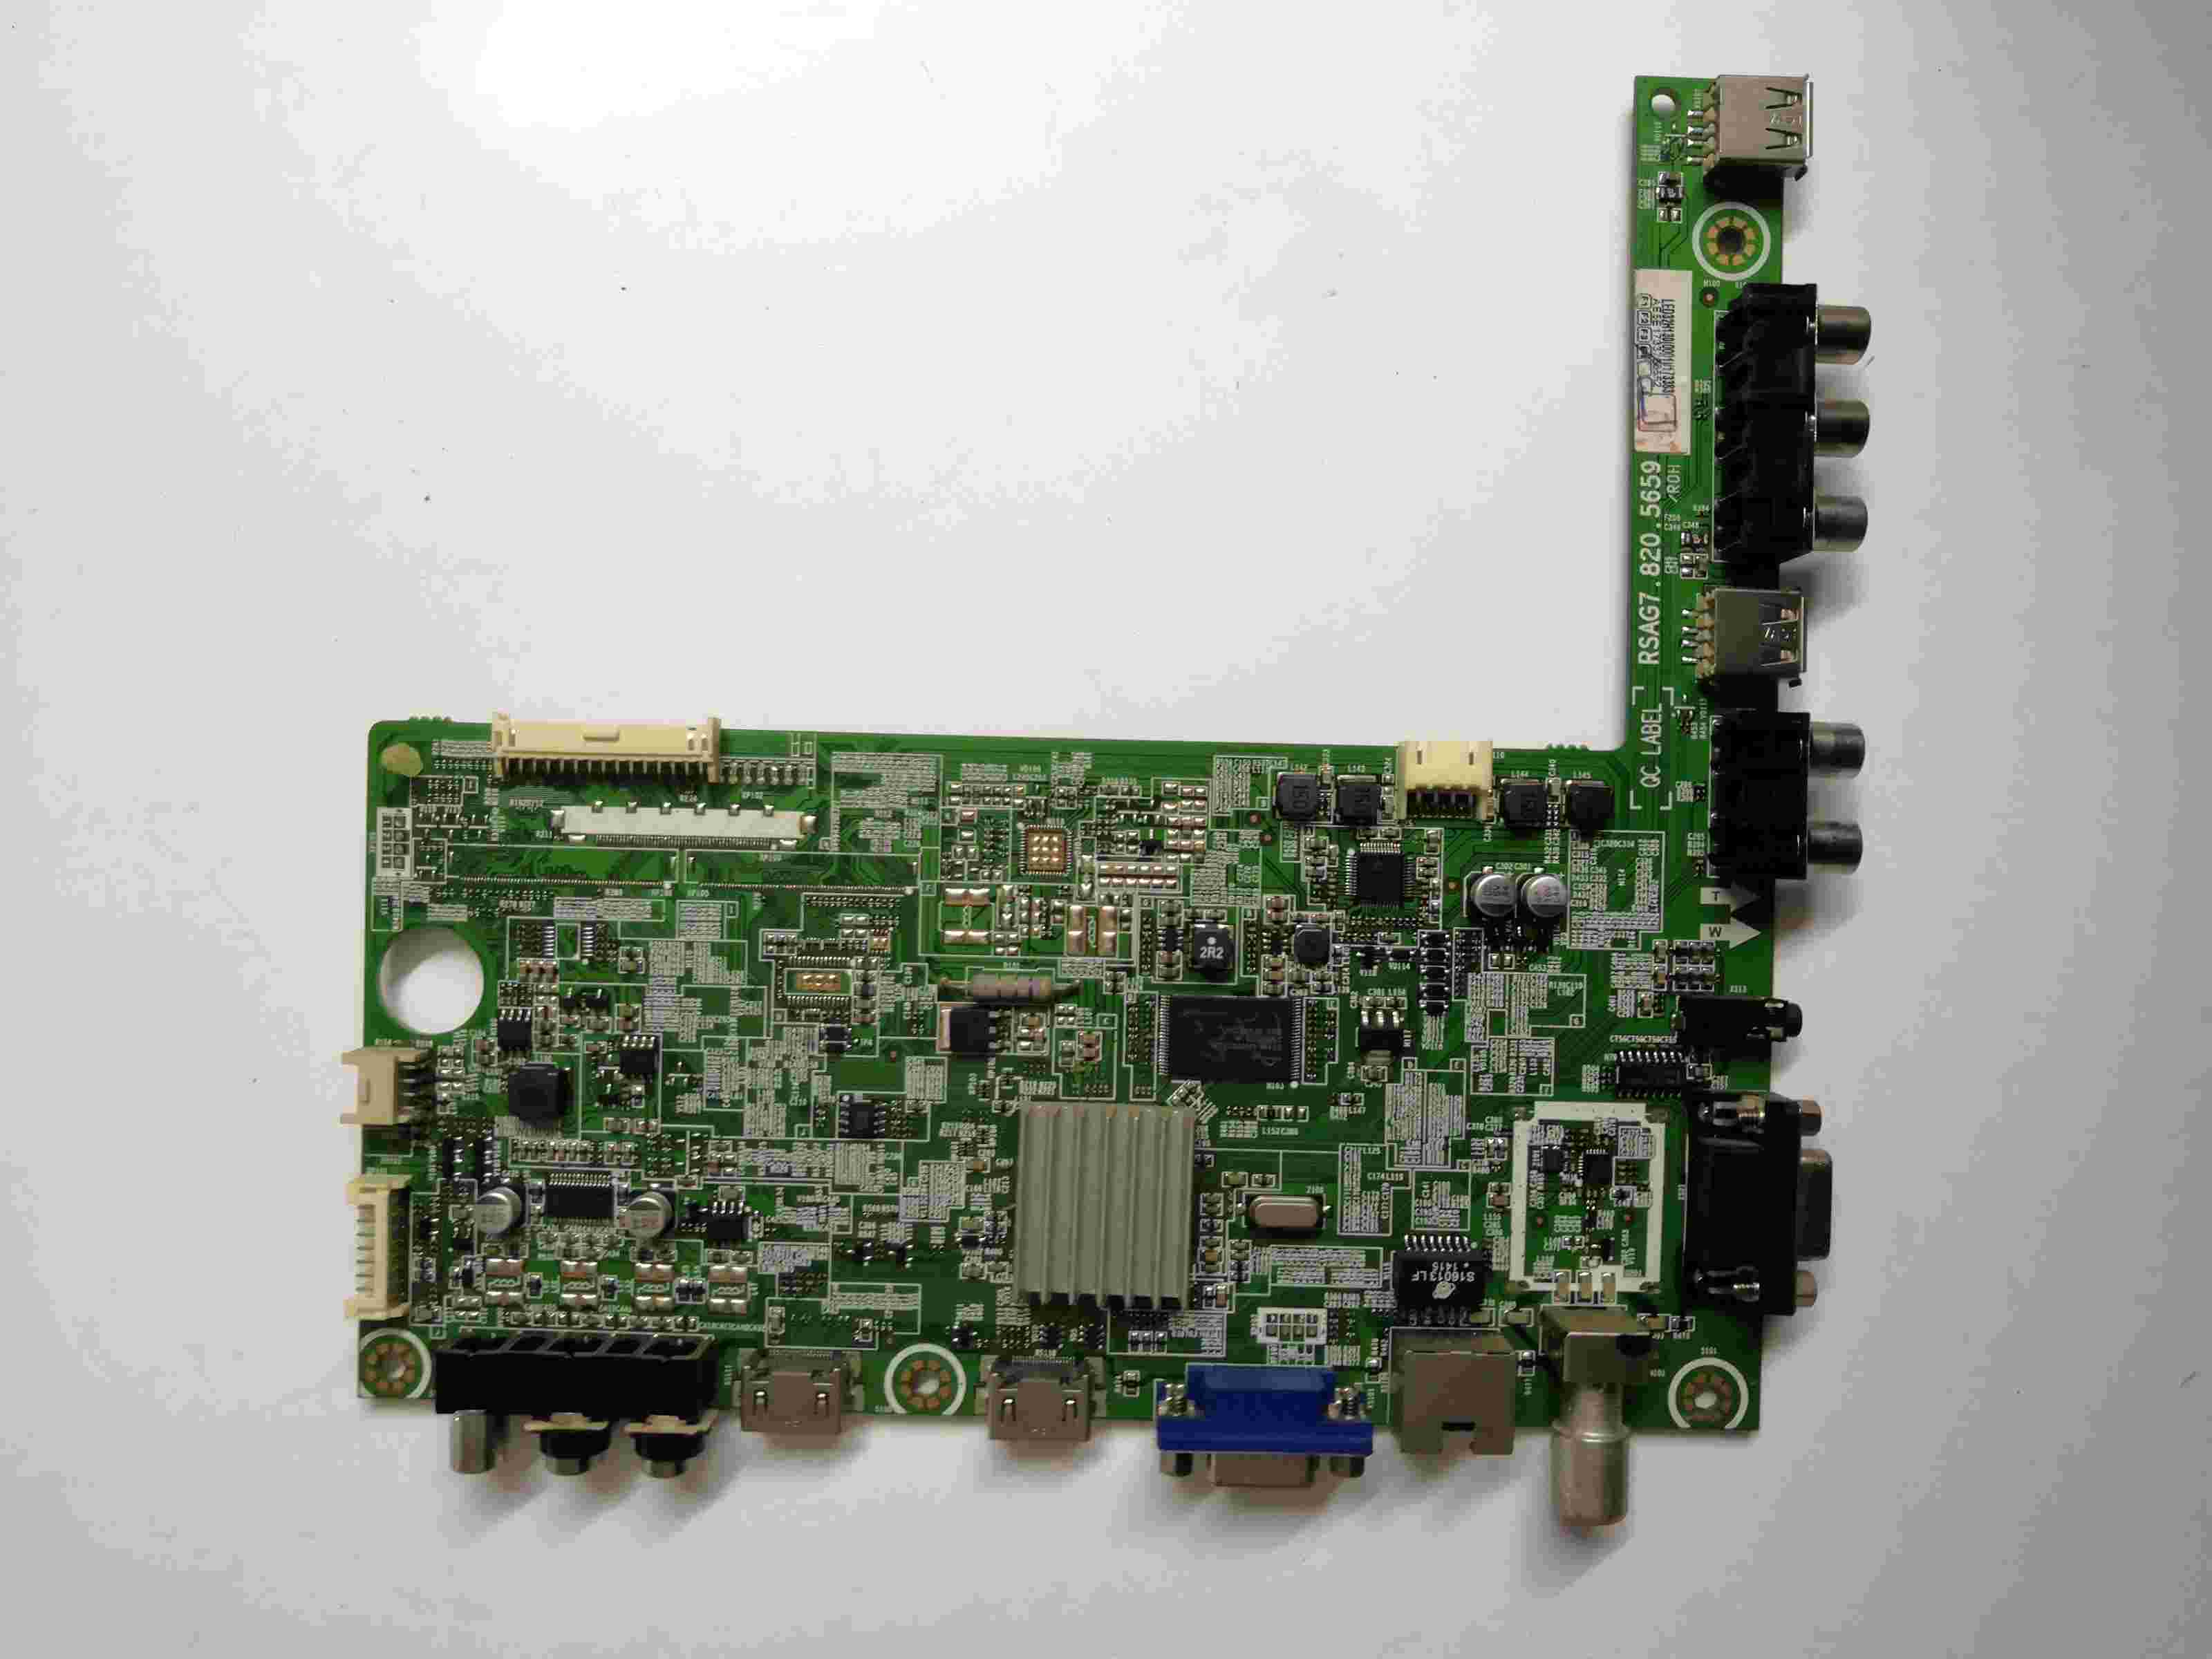 Audio & Video Replacement Parts Main Board Power Board Circuit Logic Board Constant Current Board Led 32h130 Motherboard Rsag7.820.5659 Screen He315gh-e88